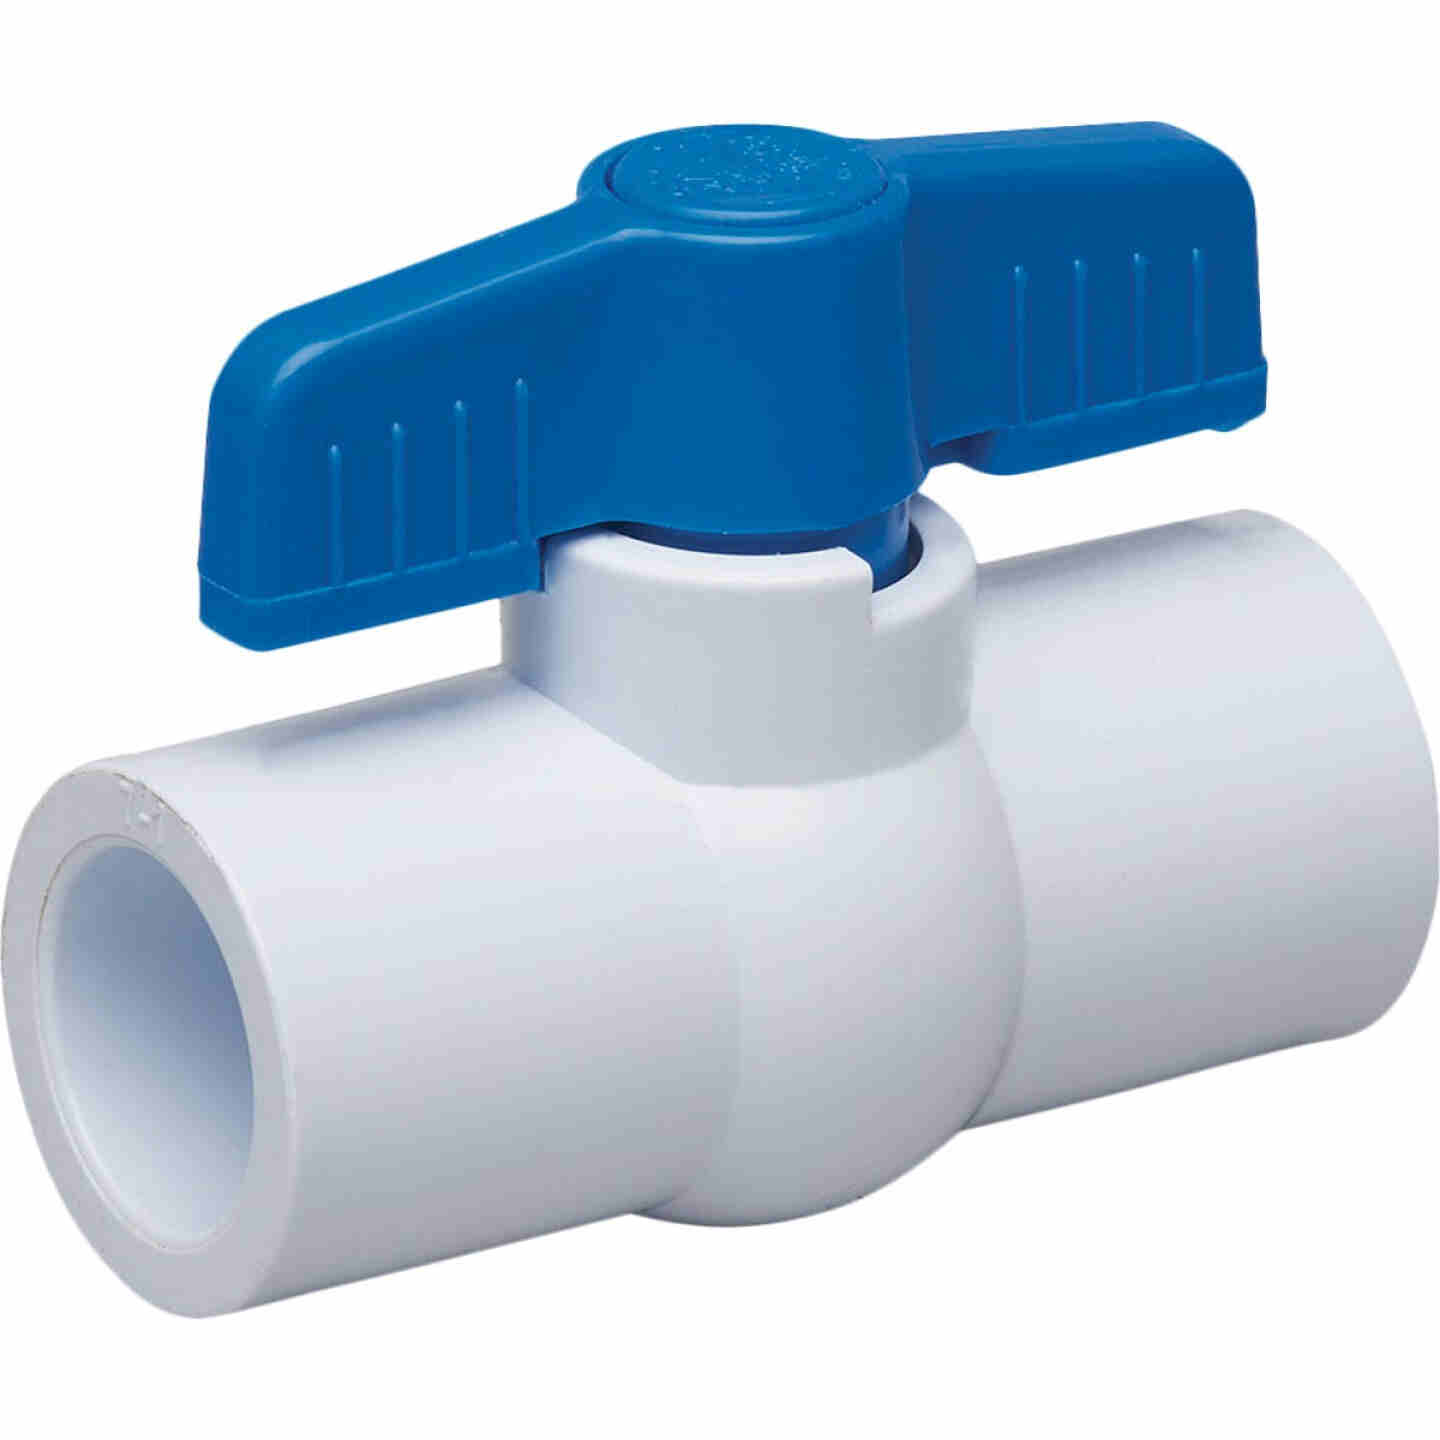 Proline 1 In. Solvent x 1 In. Solvent PVC Schedule 40 Quarter Turn Ball Valve, Non-NSF Image 1